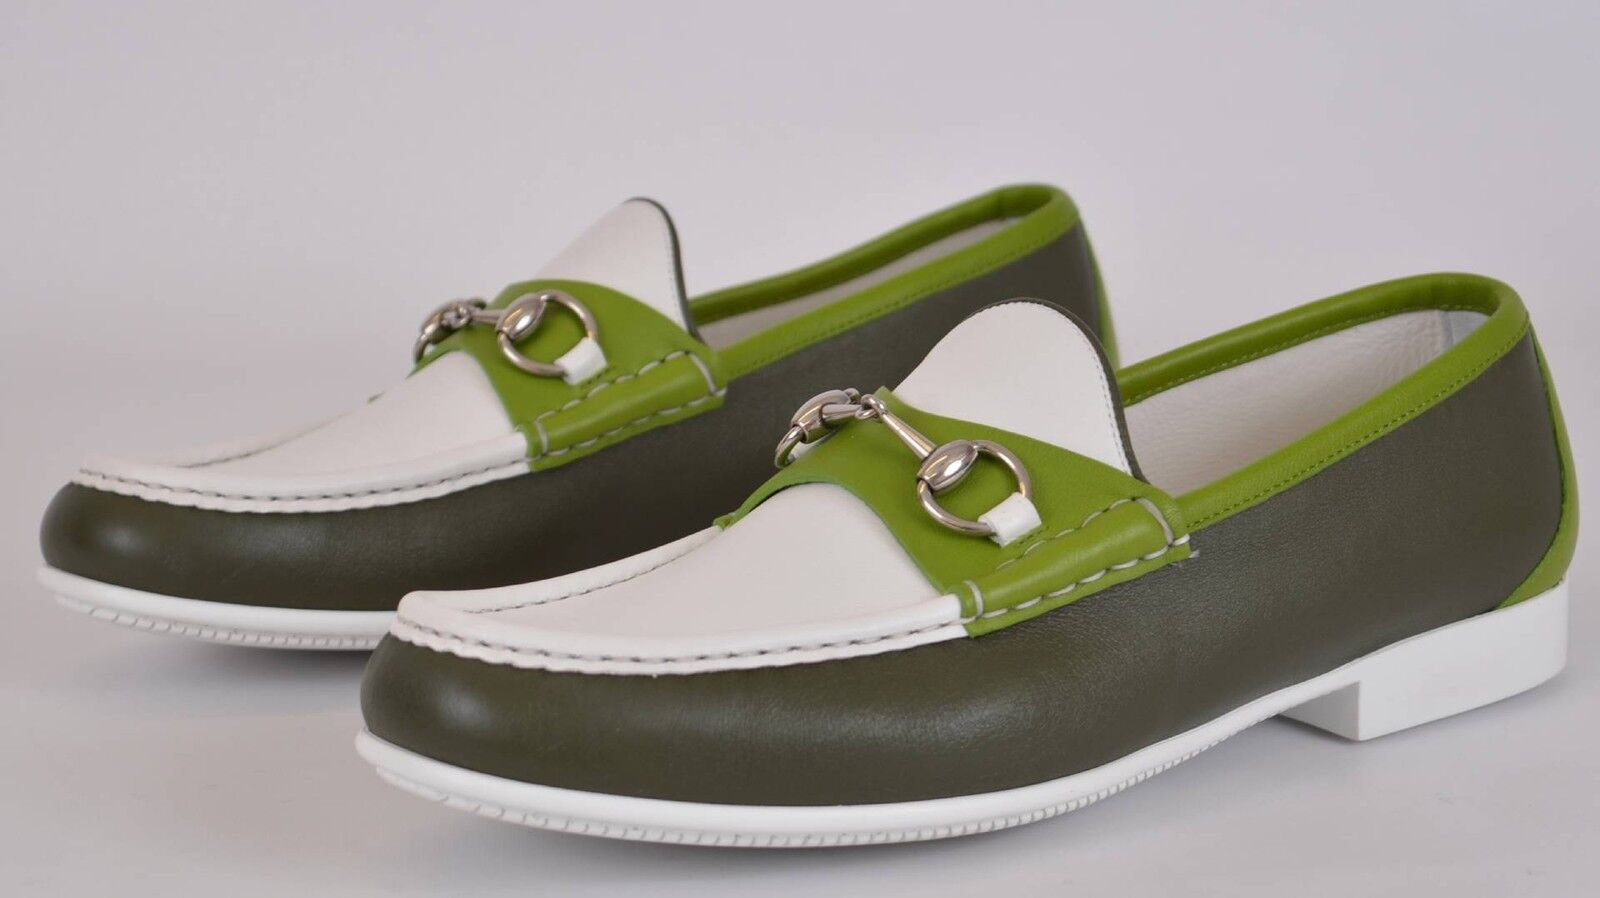 NEW Gucci Men's 337060 Green White Leather Horsebit Loafer Shoes 10.5 G 11.5 US 1